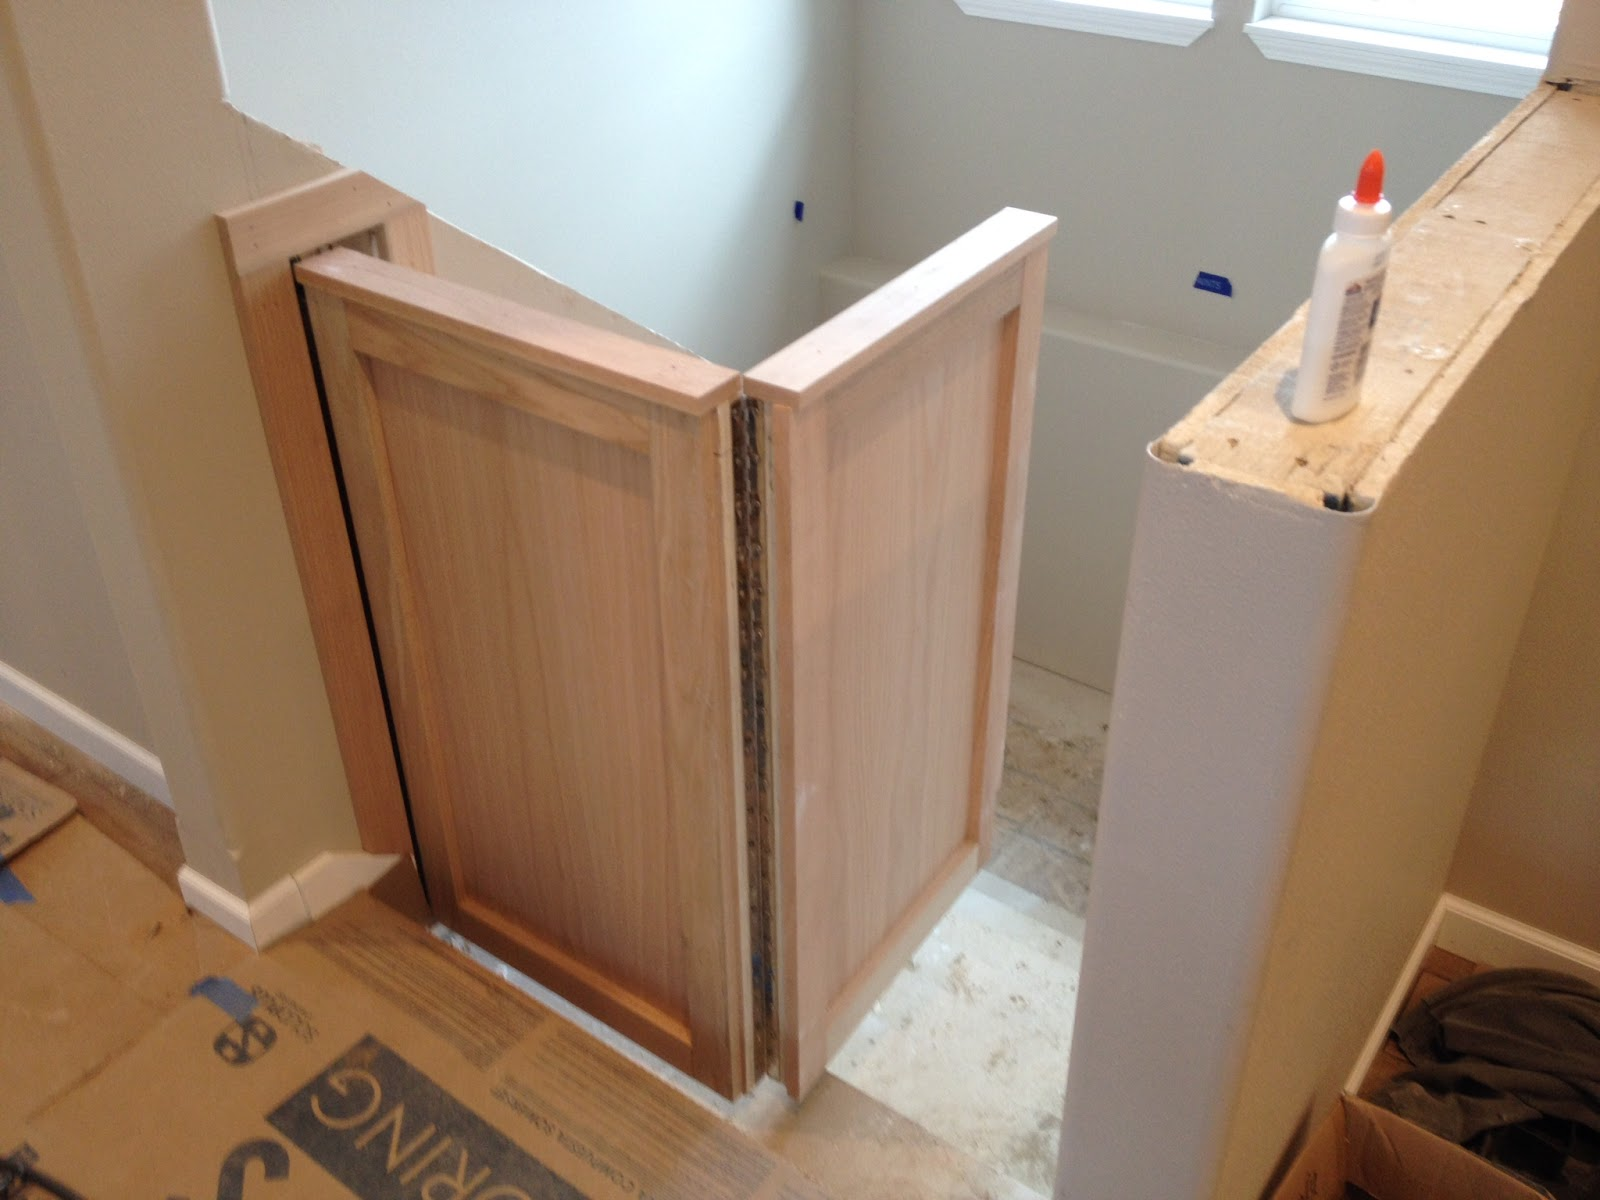 hidden baby gate, 5 space-saving tips for your custom home, hagen homes